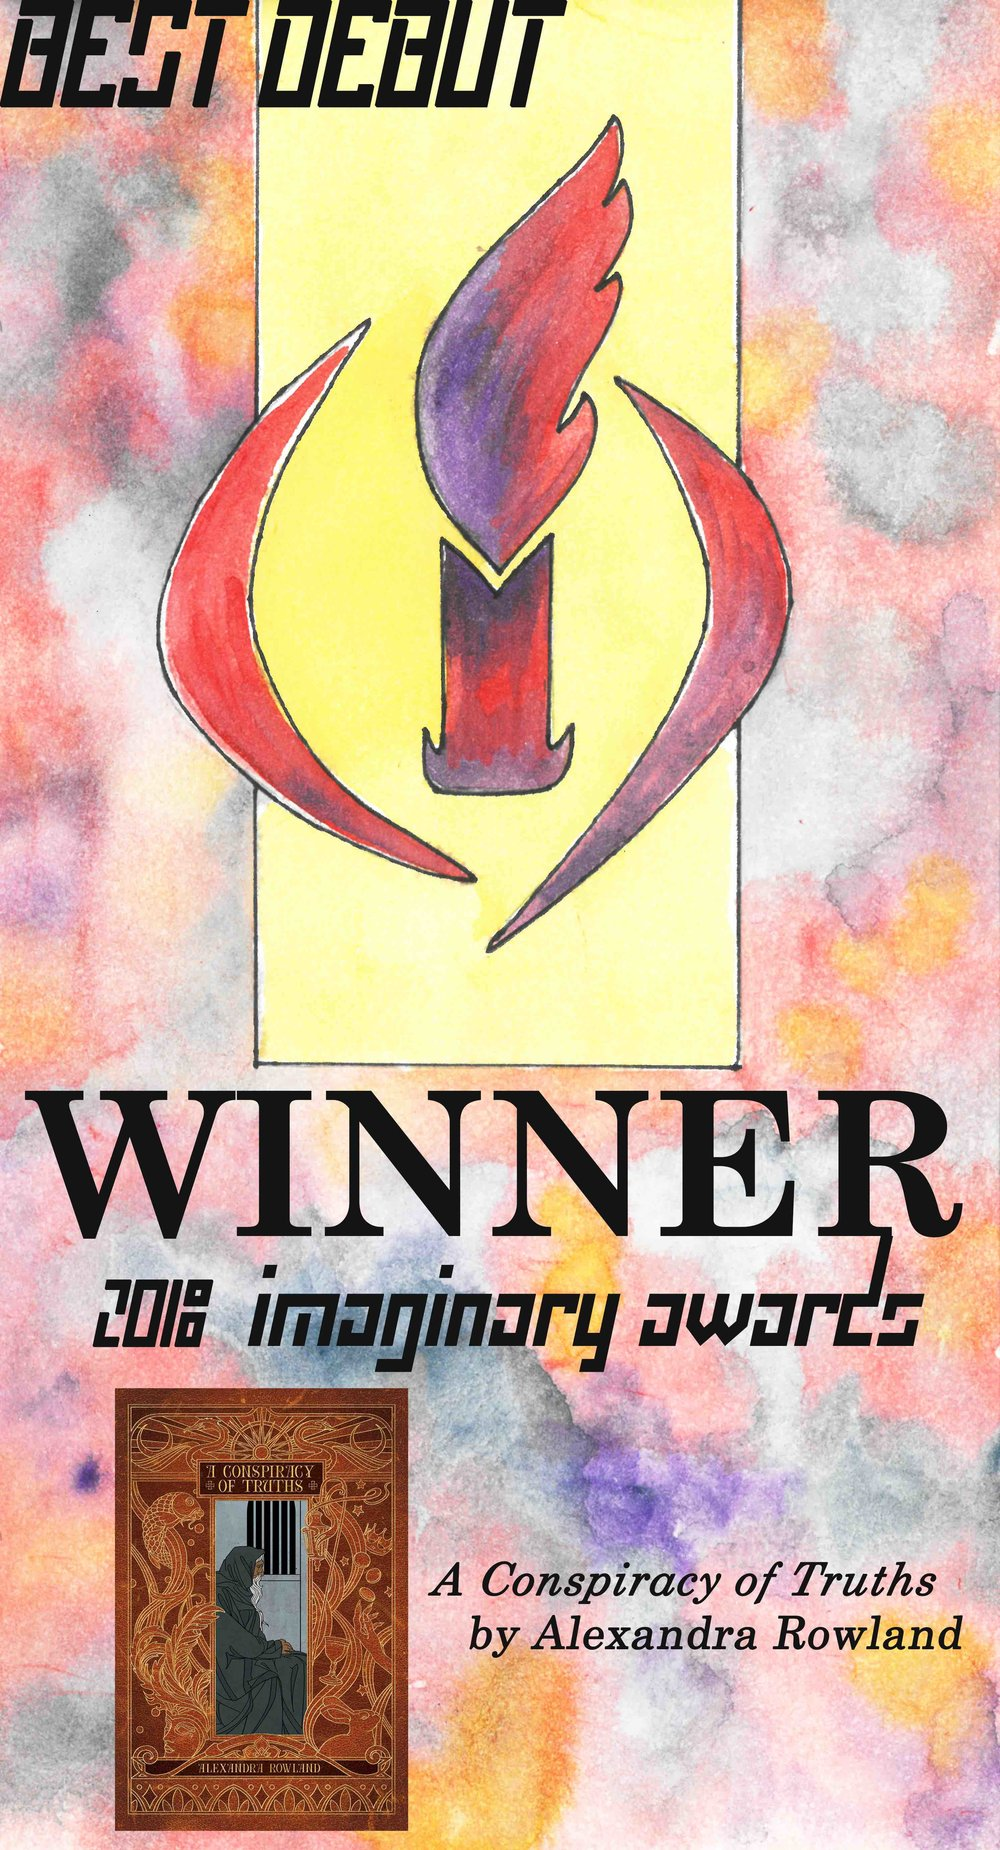 2018 - Winner! A Conspiracy of Truths by Alexandra RowlandThe Poppy War by Rebecca KuangThe Philosopher's Flight by Tom MillerSemiosis by Sue BurkeWitchmark by C.L. PolkThe Warrior Within by Angus MacIntyre